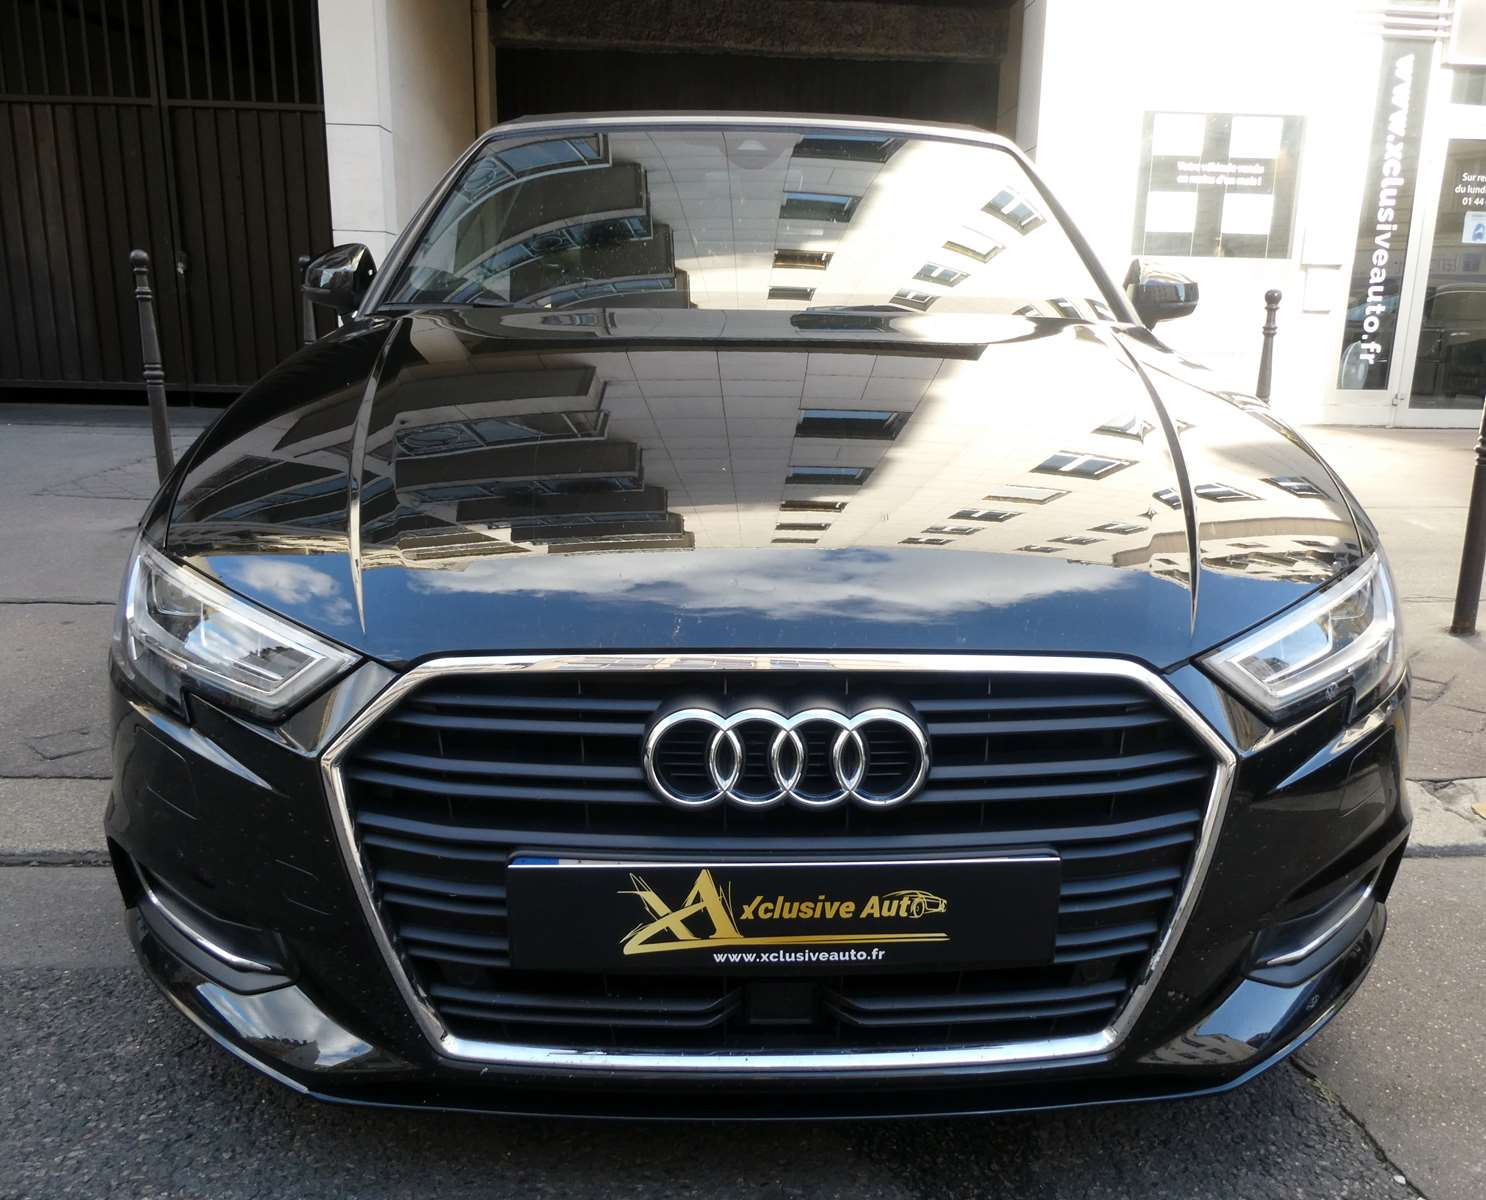 Audi A3 (2) cabriolet 35 TFSI 150 Design luxe S tronic 7 7